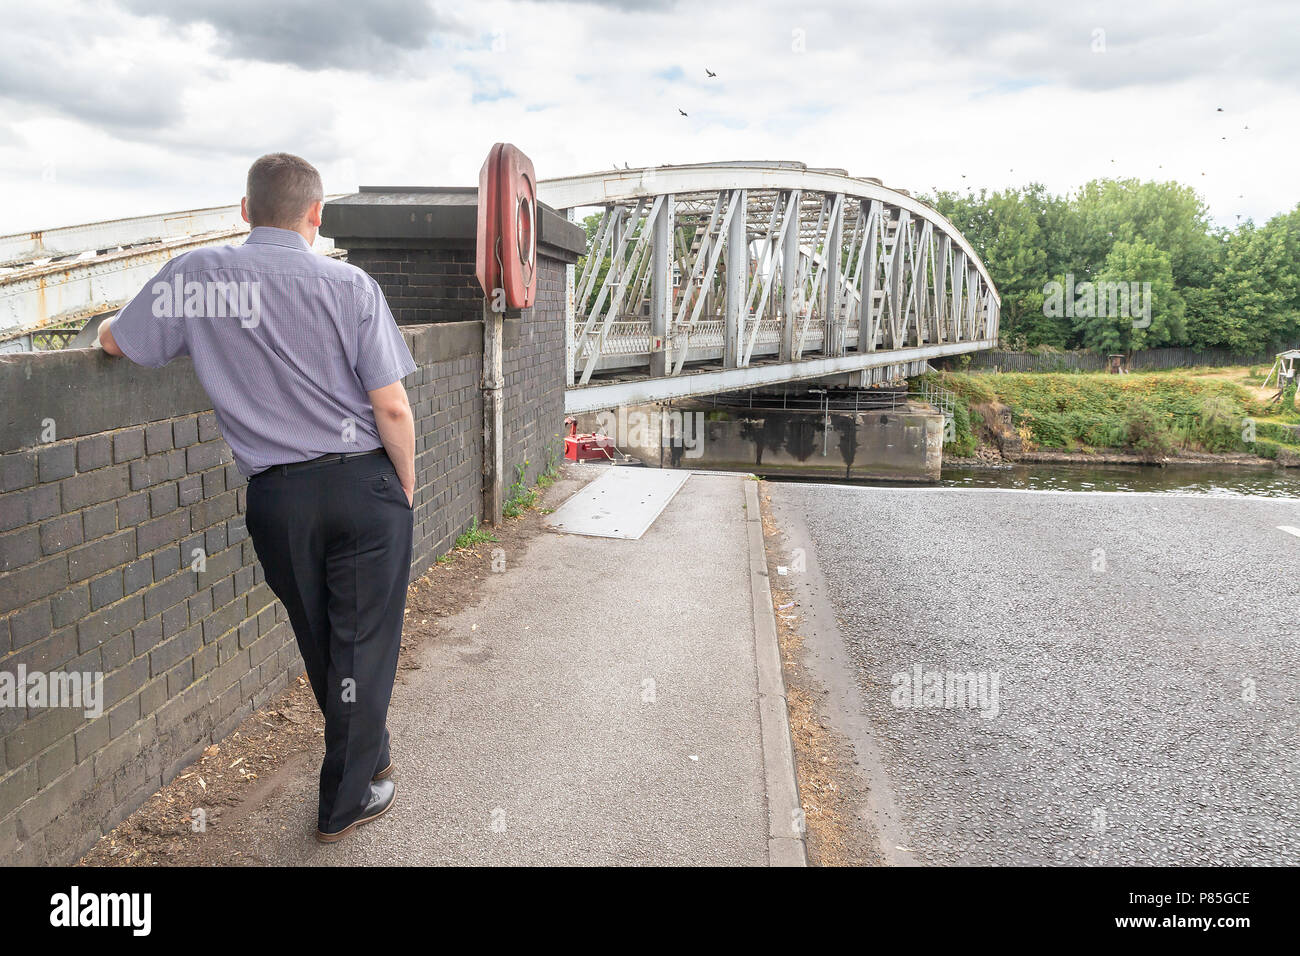 09-July 2018 - Male pedestrian leans against a wall and watches as Stockton Heath Swing Bridge closes after a ship has passed along the Manchester Shi - Stock Image